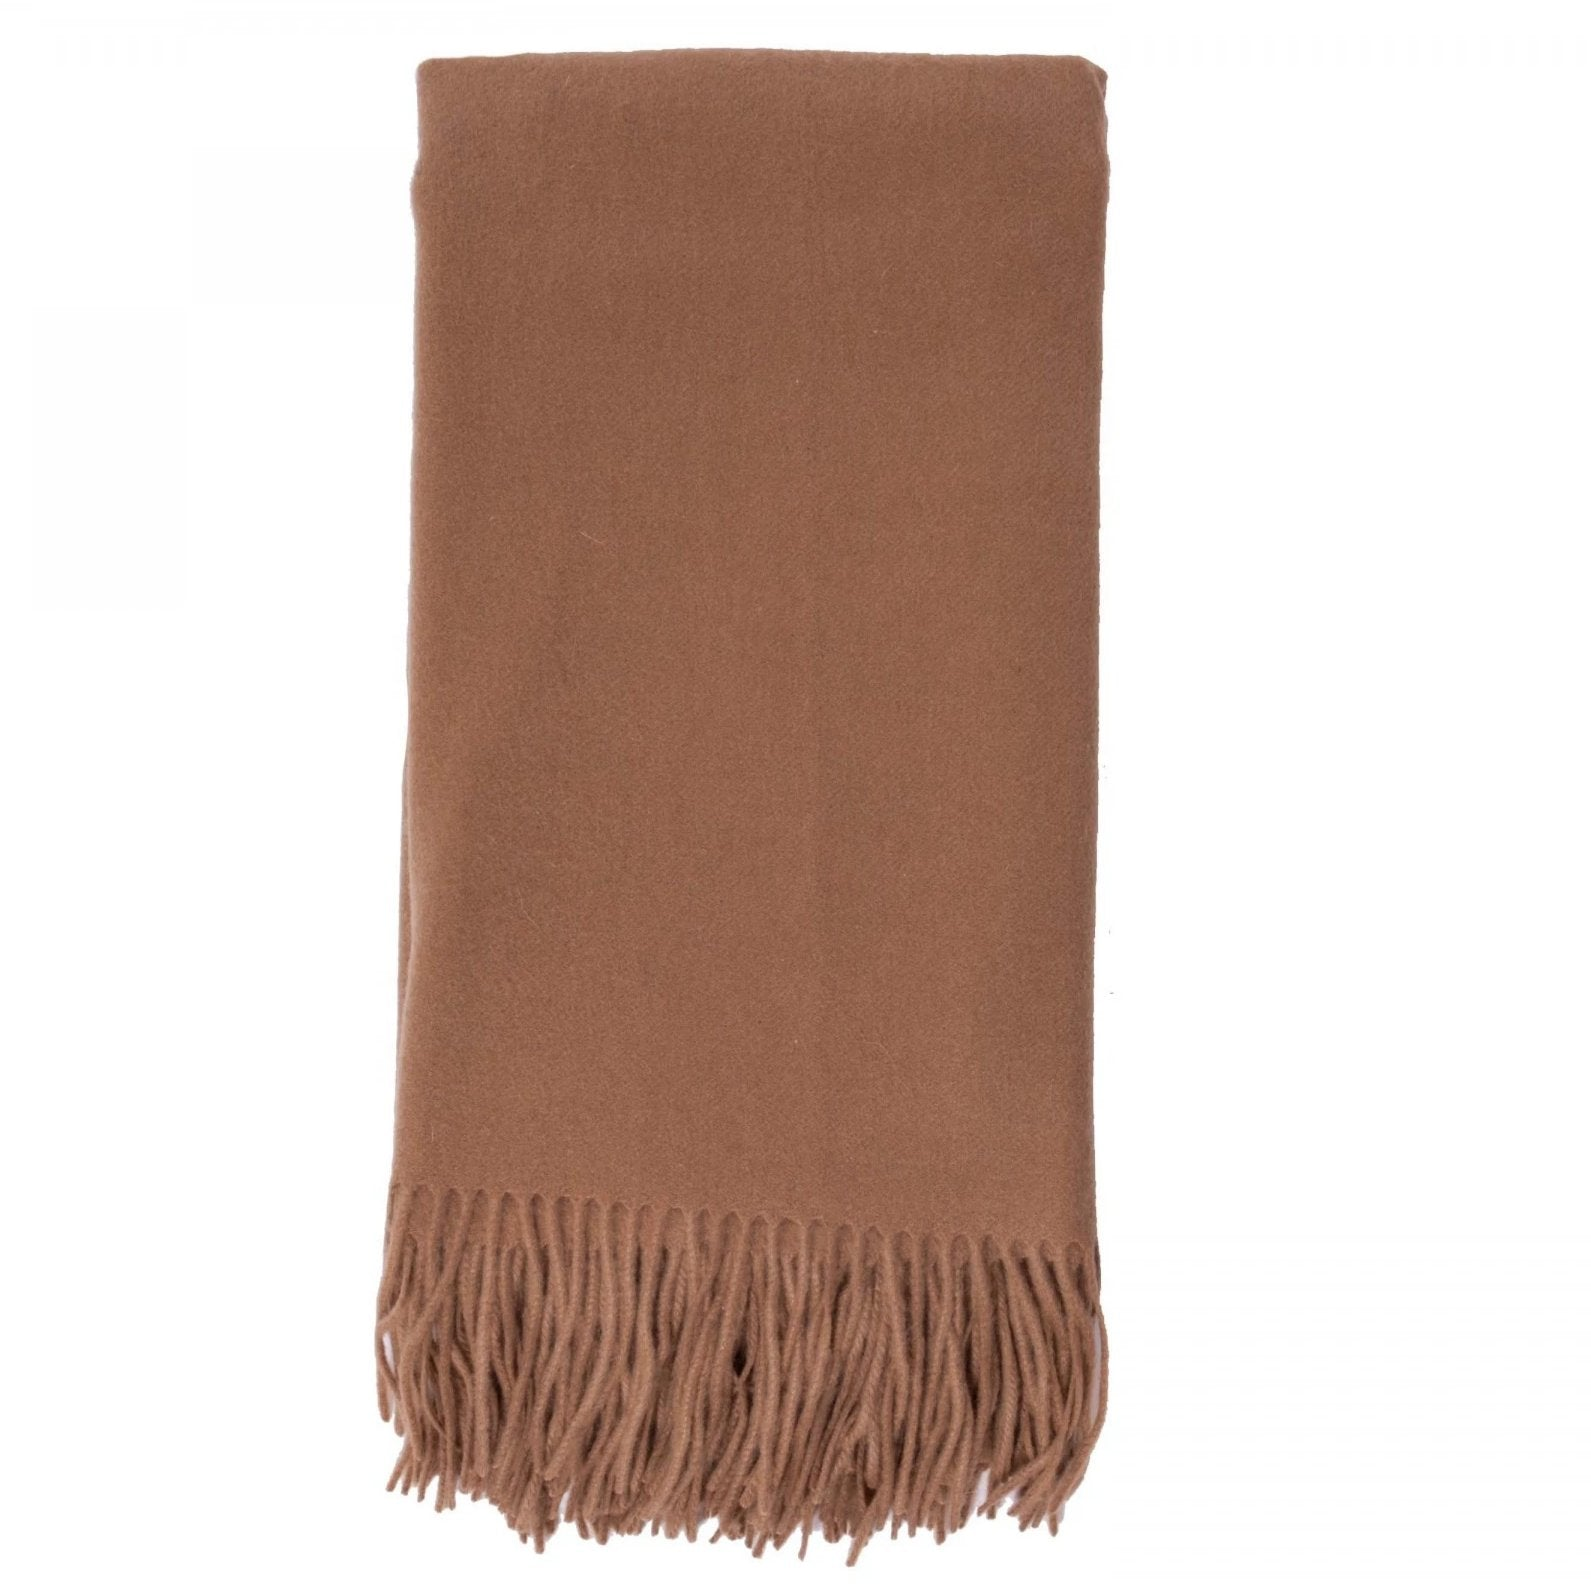 Alashan 100% Cashmere Plain Weave Throw - Camel